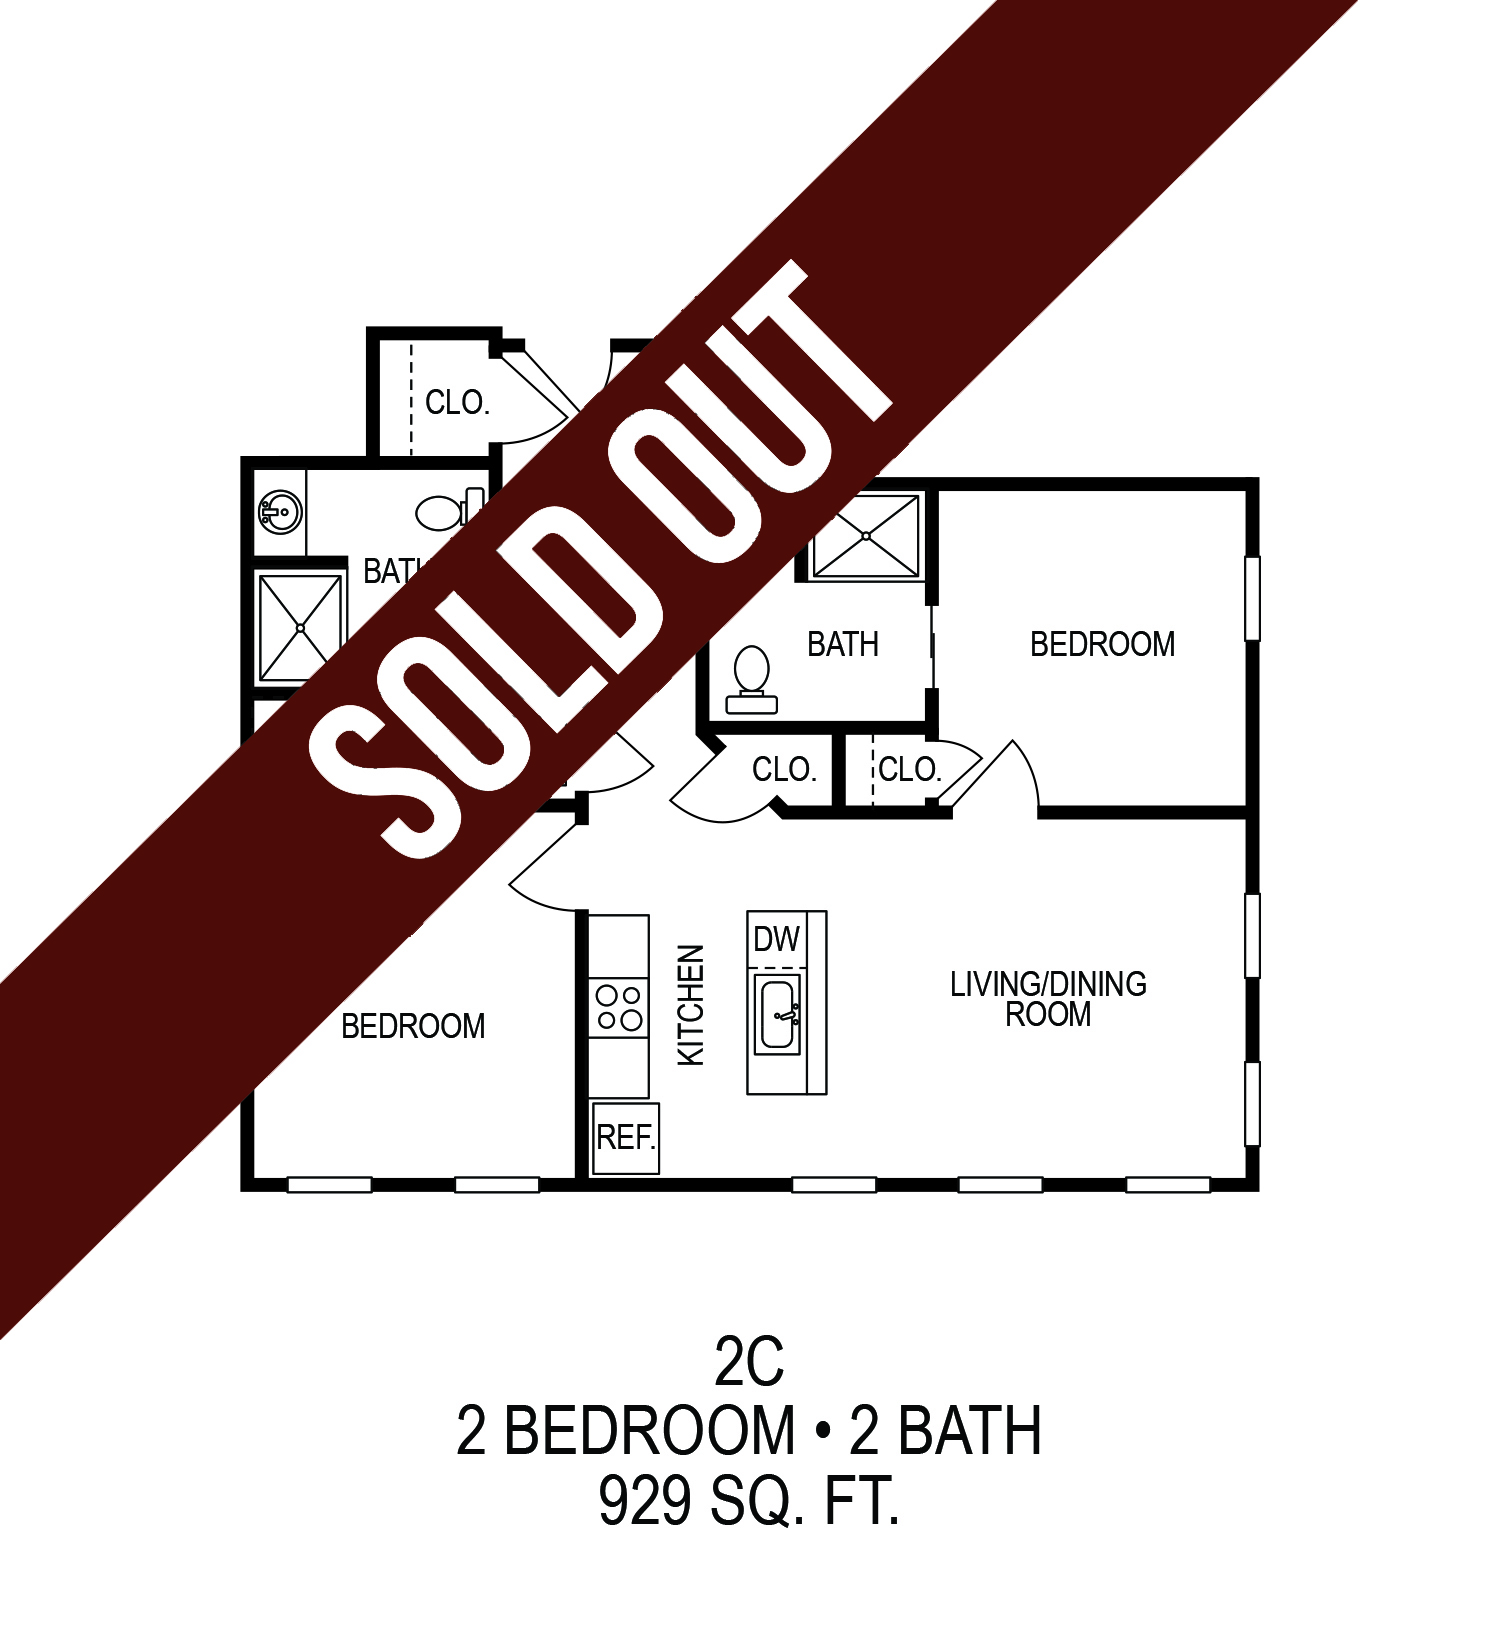 625 S. Goodman Apartments - Floorplan - Two Bedroom (C)*